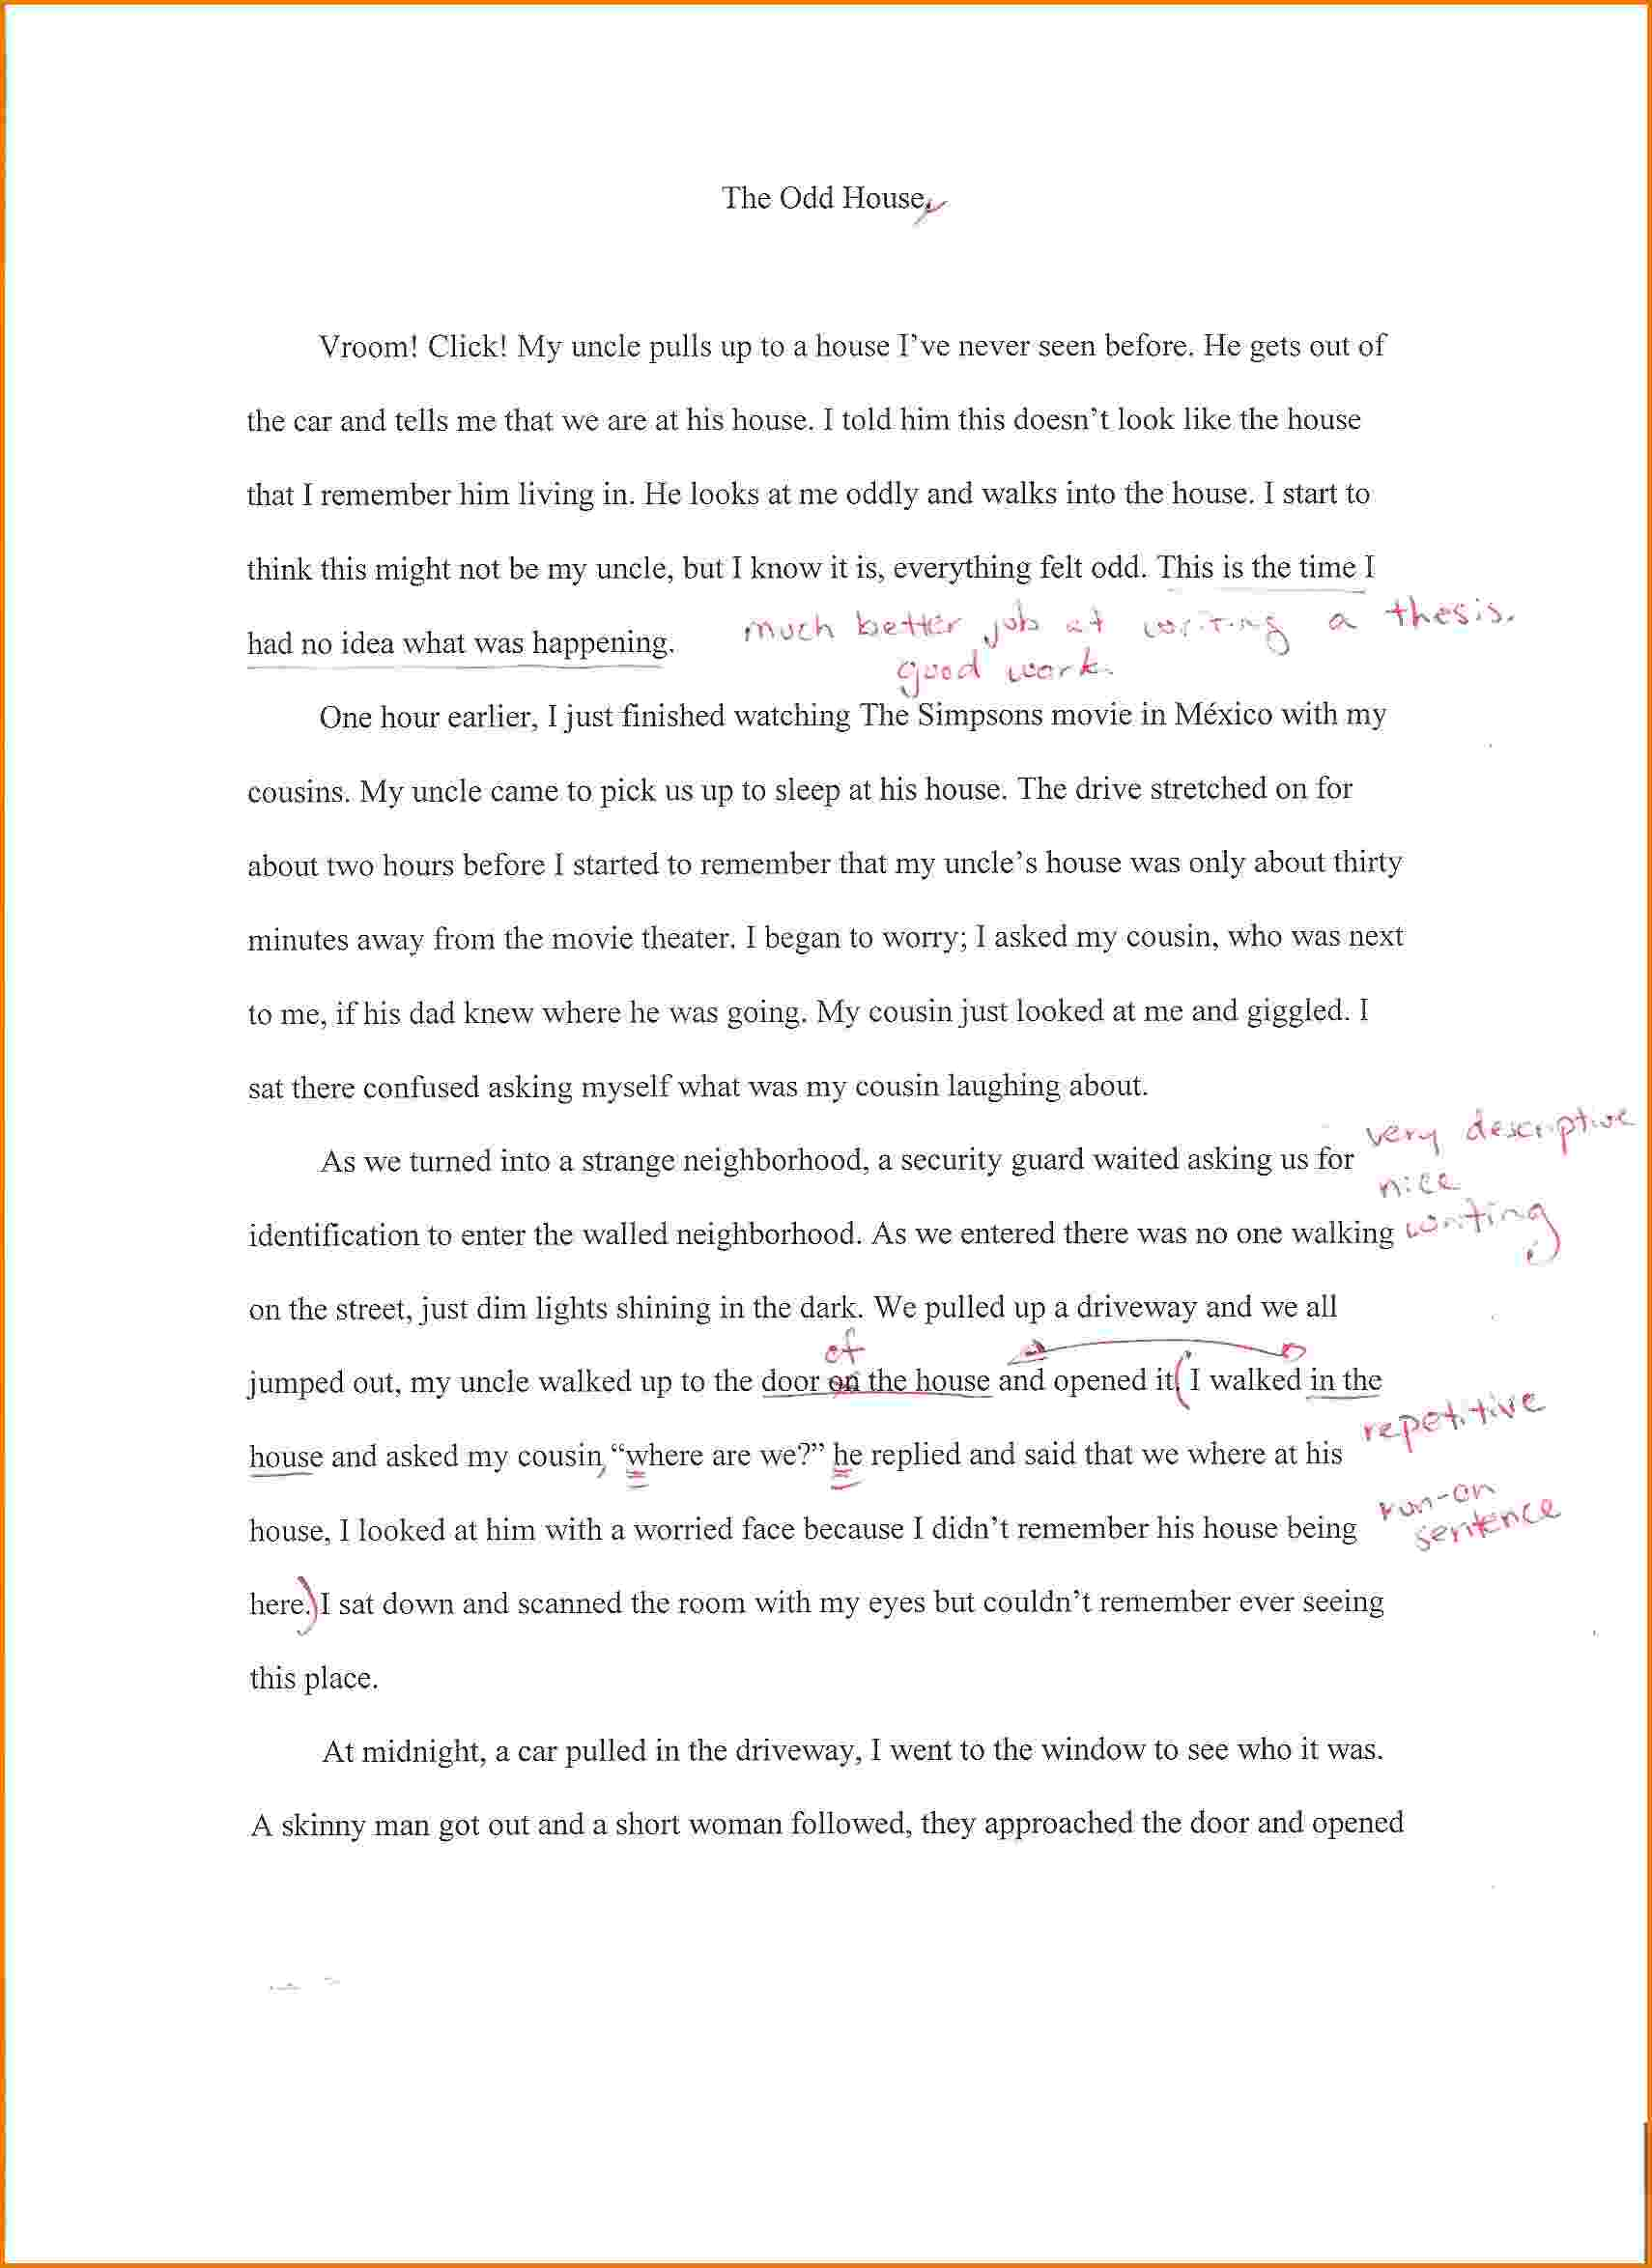 006 Essay Of Who Am I 2820472608 Family Values Research Paper Awesome As A Person Filipino Writing Aim In Life Full